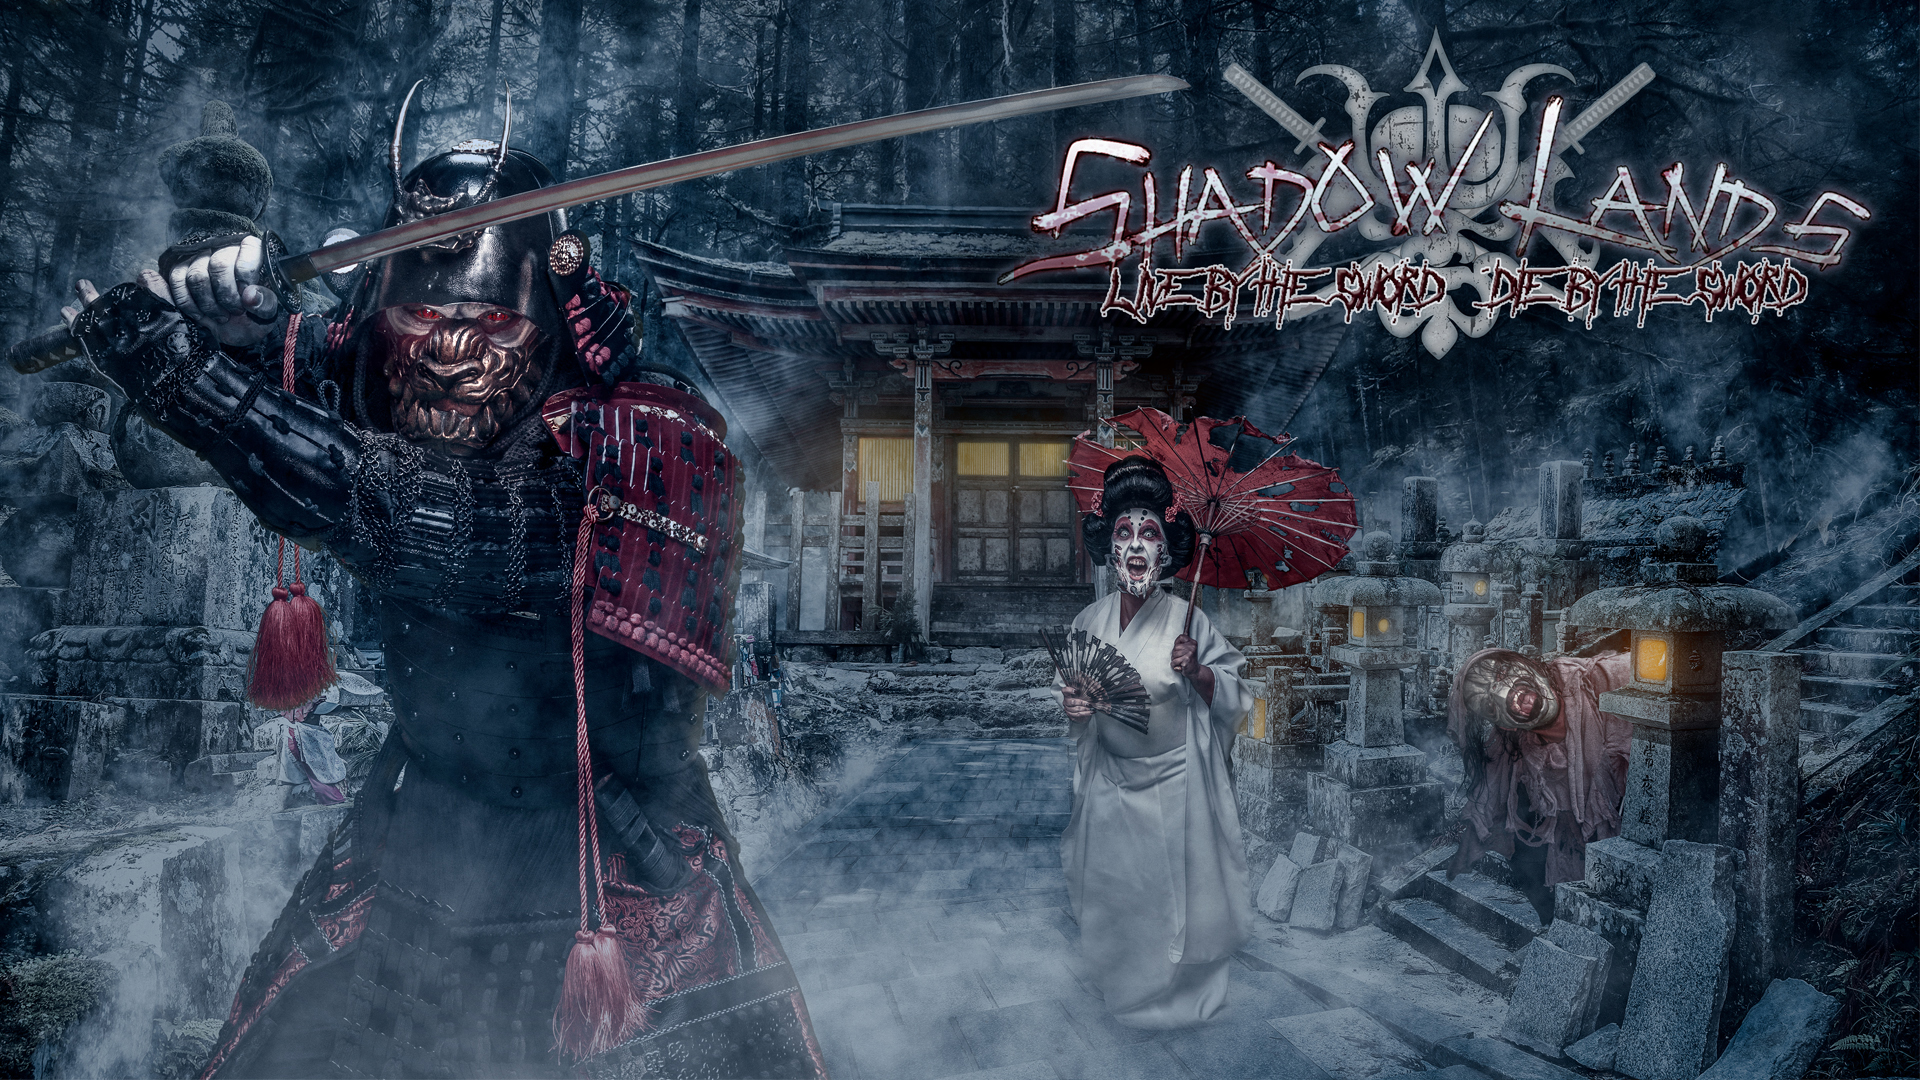 Shadowlands: Live by the Sword, Die by the Sword (Image courtesy of Knott's Scary Farm)